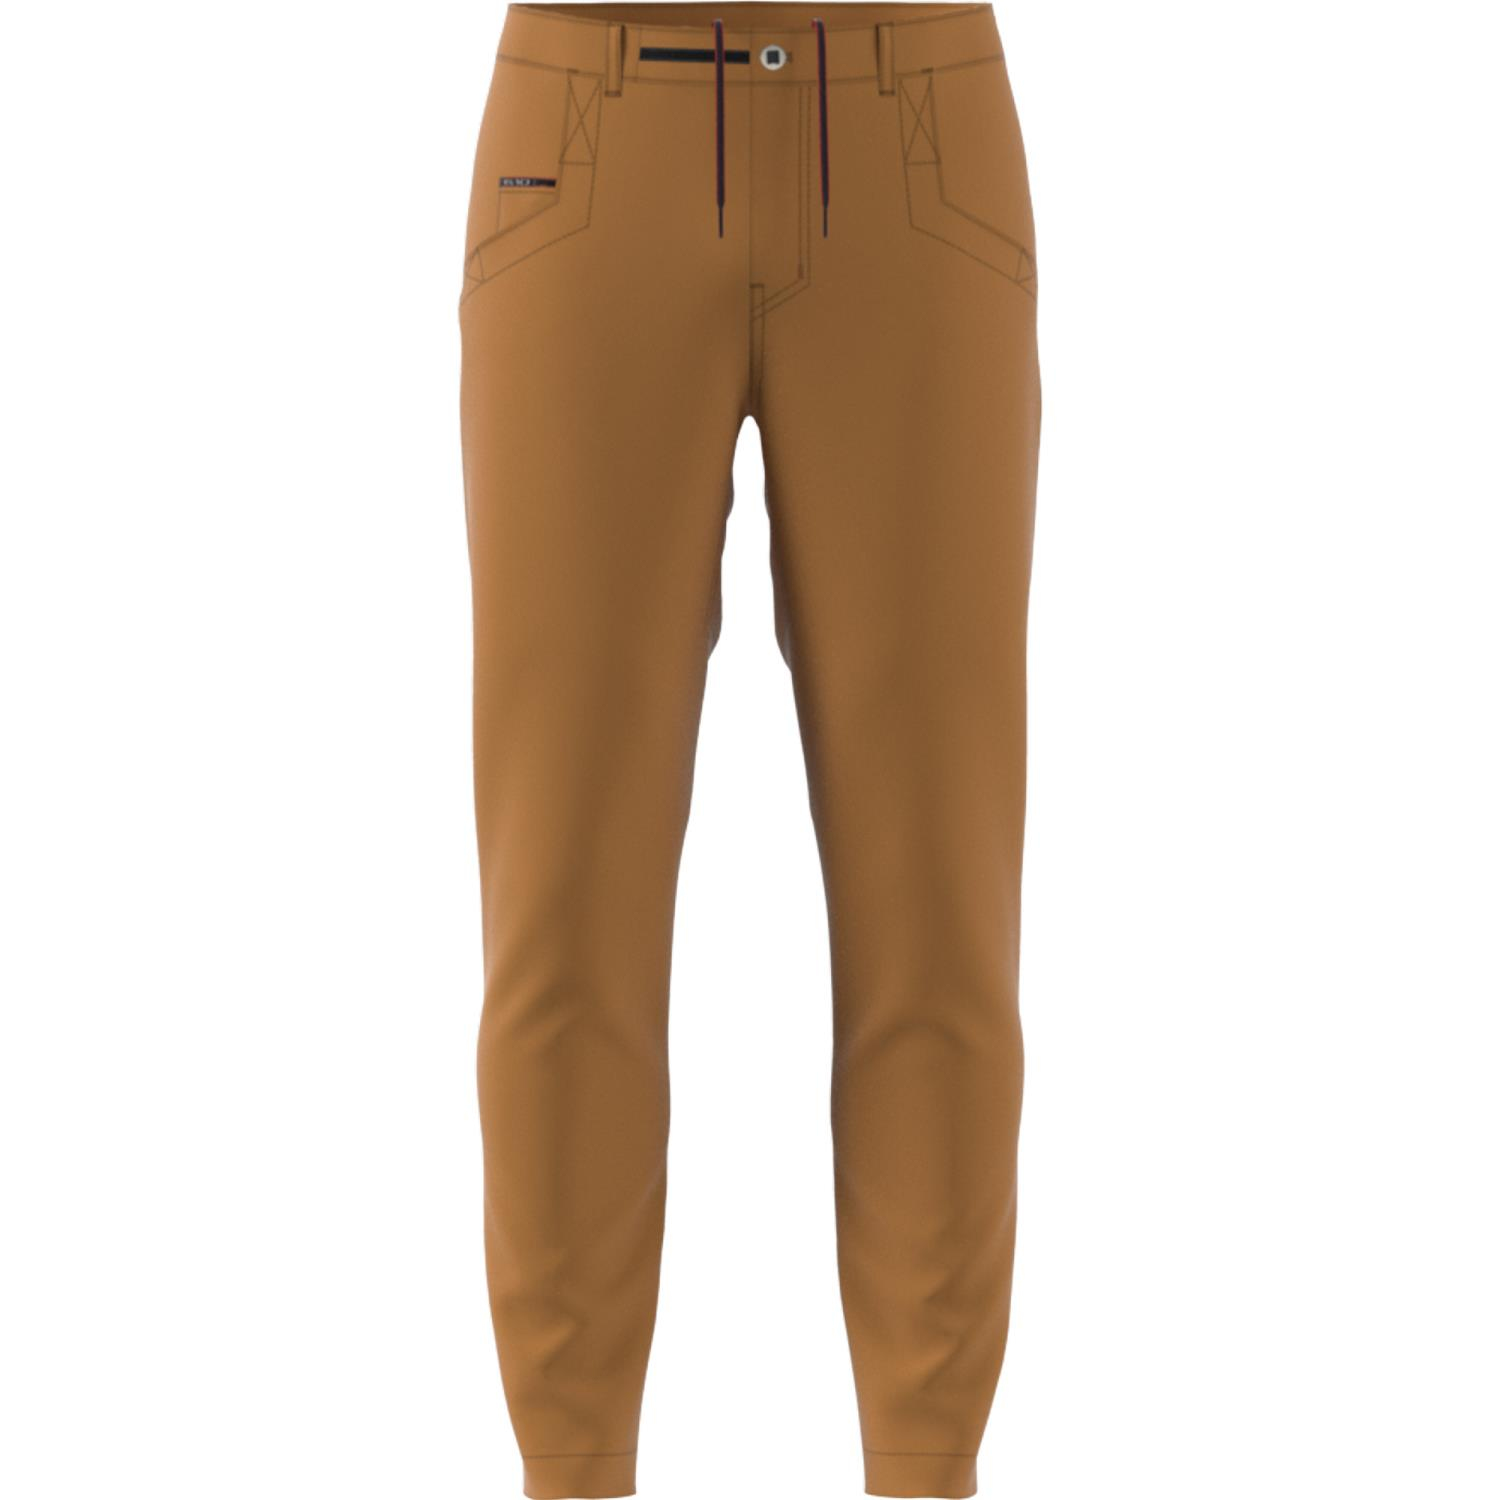 Five Ten 5.10 FelsB Pant Herren Kletterhose beige,mesa Gr. L von Five Ten